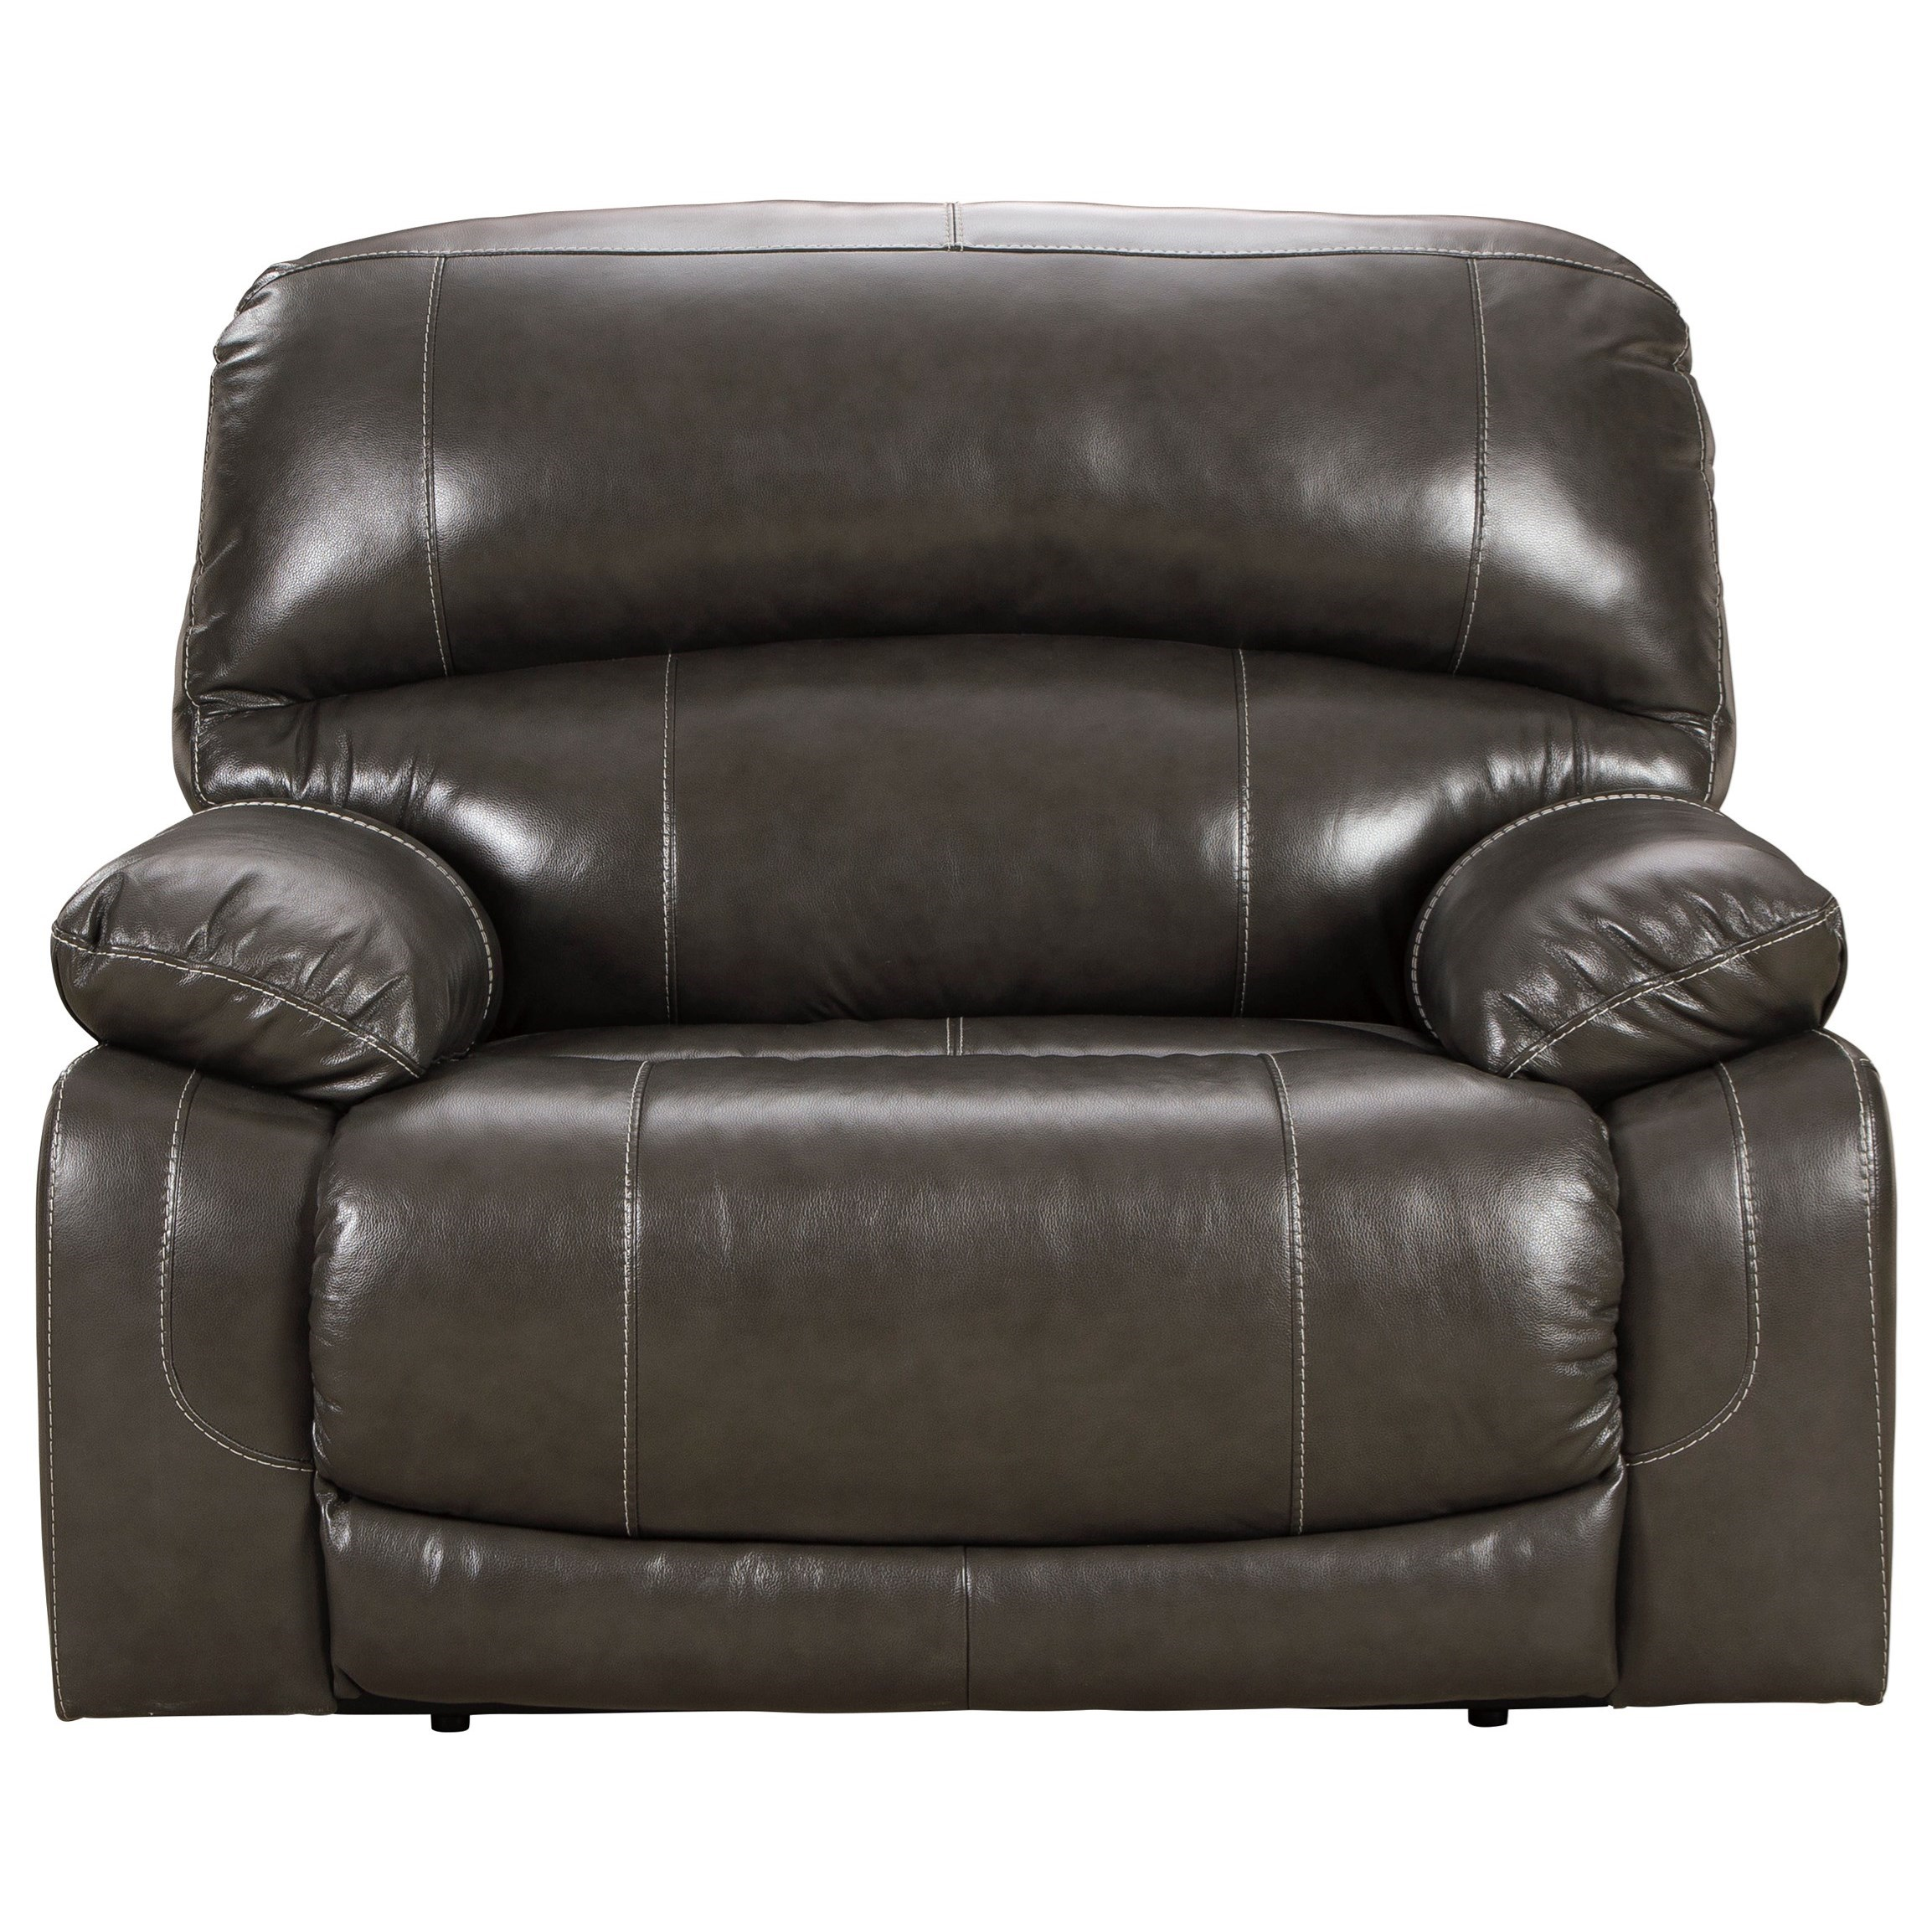 Hallstrung Power Wide Recliner by Ashley (Signature Design) at Johnny Janosik